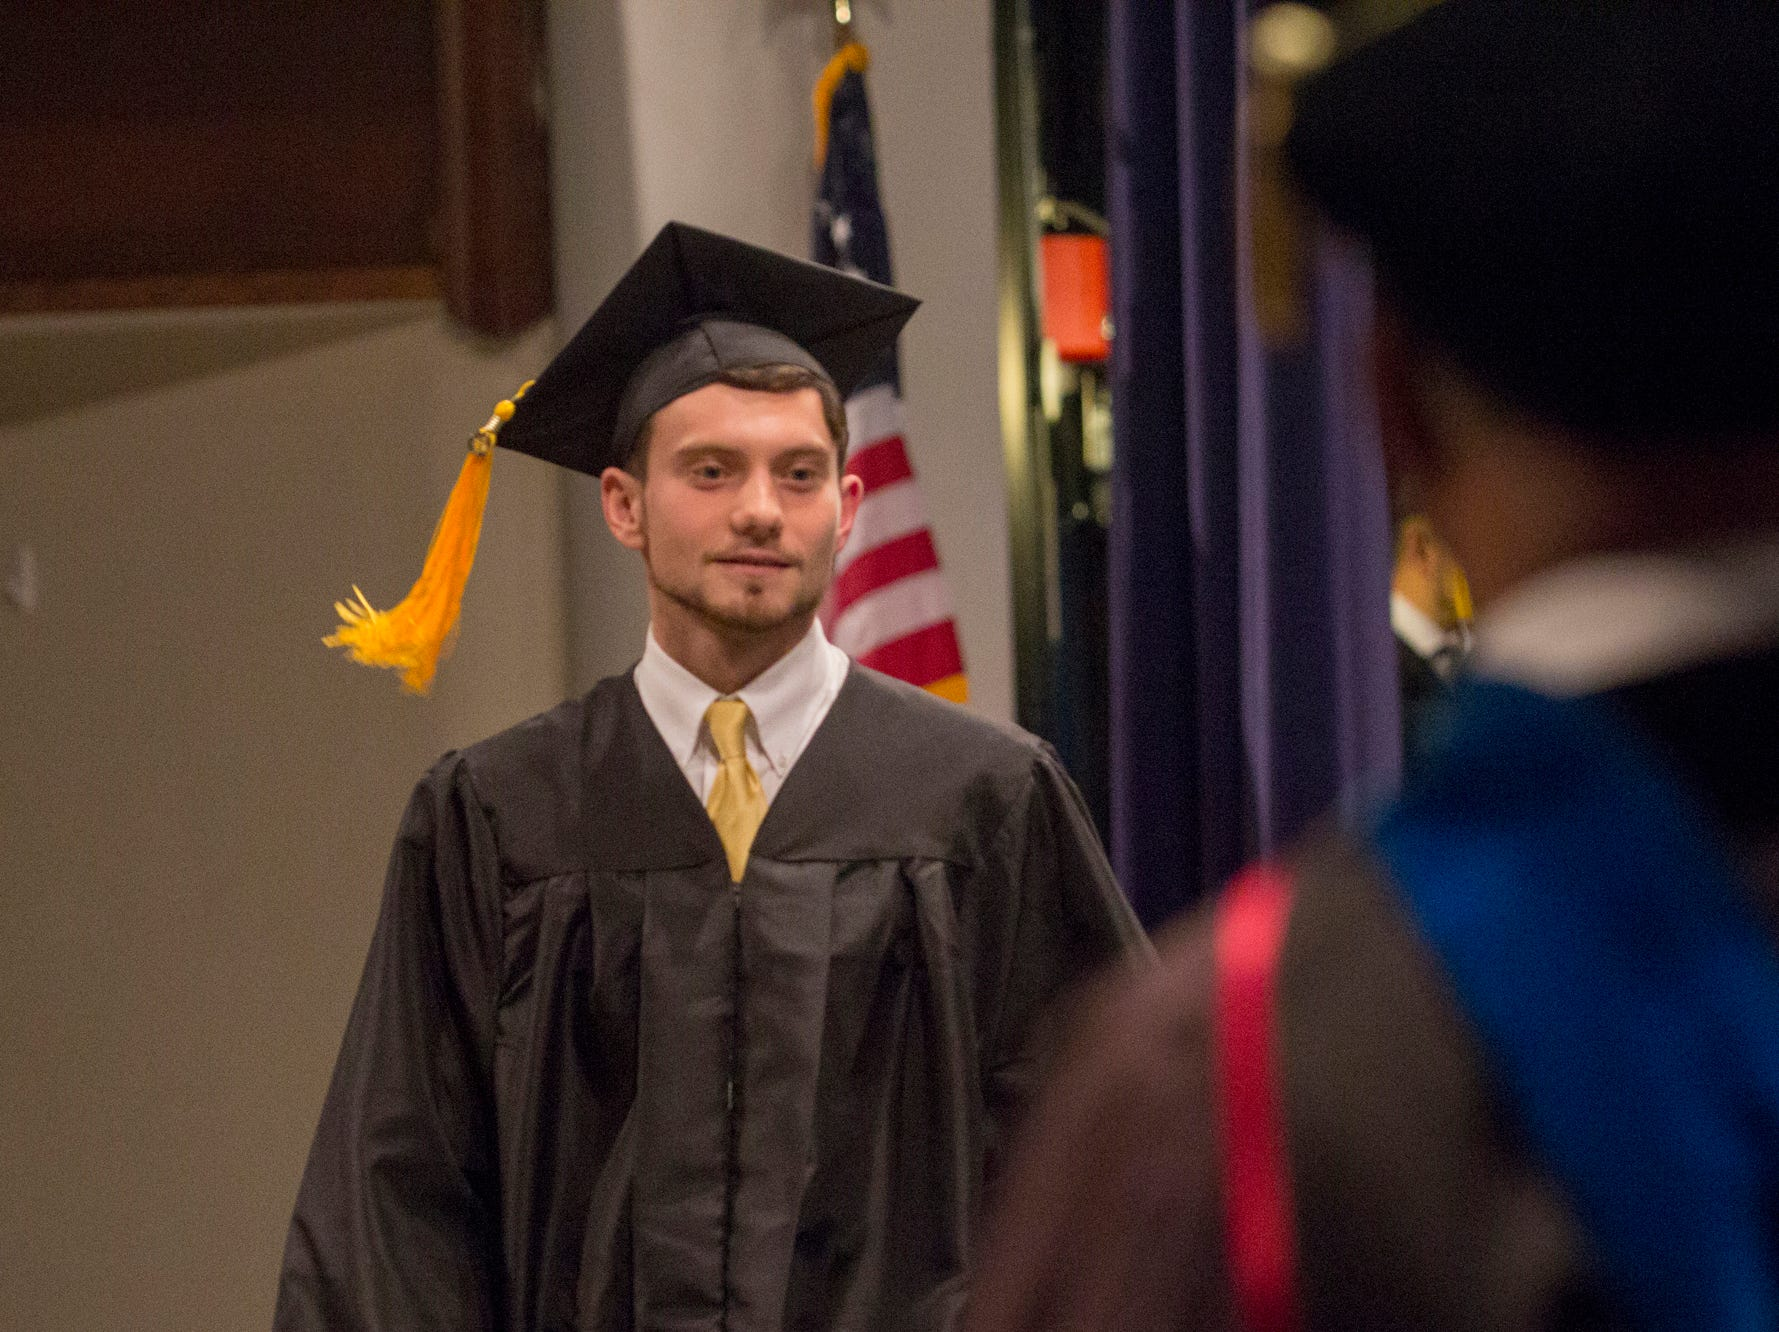 Garrett Farrimond walks across the stage at Mars Hill University graduation. Mars Hill University conferred bachelor's degrees on 71 graduates on Dec. 14, 2018.